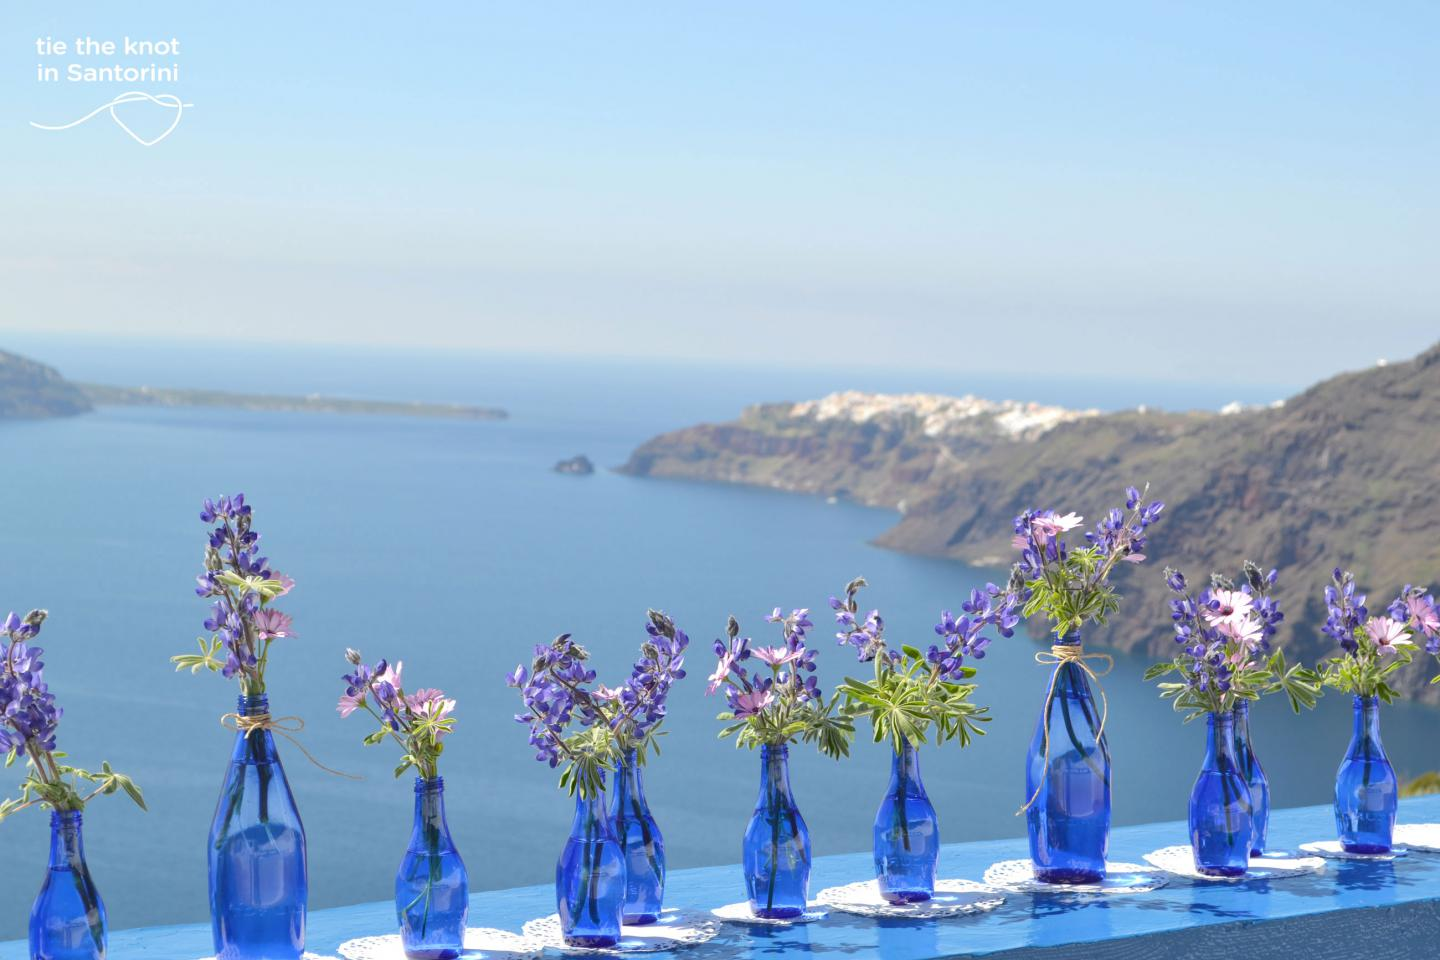 Diy Santorini Wedding Decor In Blue Purple Tie The Knot In